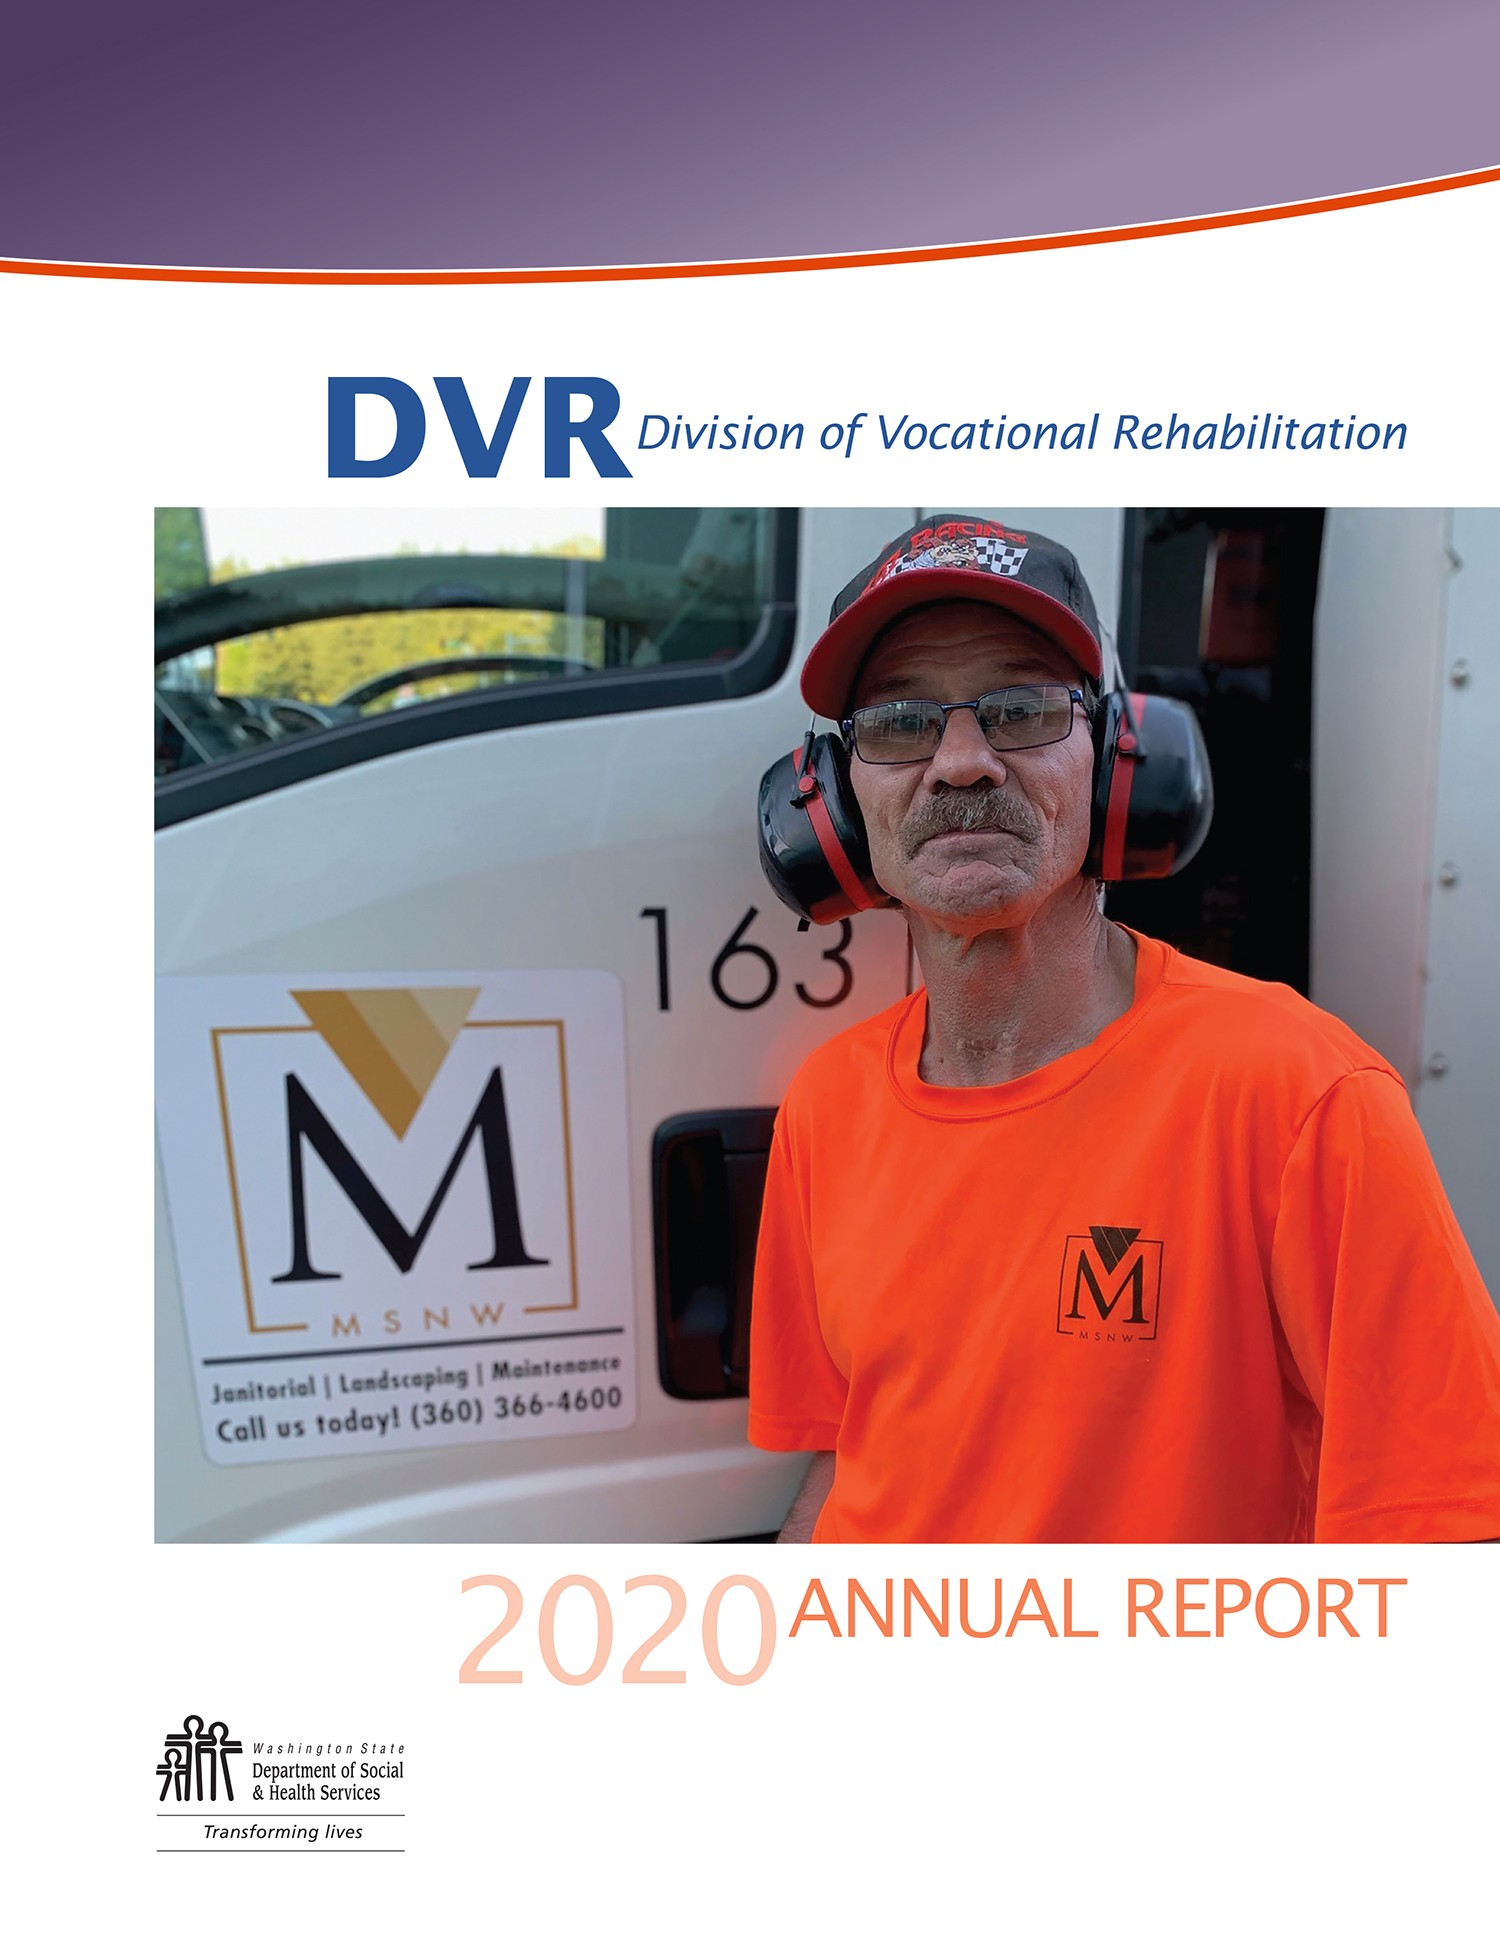 Dshs Puyallup : puyallup, DSHS', Division, Vocational, Rehabilitation, Publishes, Annual, Report, Department, Social, Health, Services, Medium